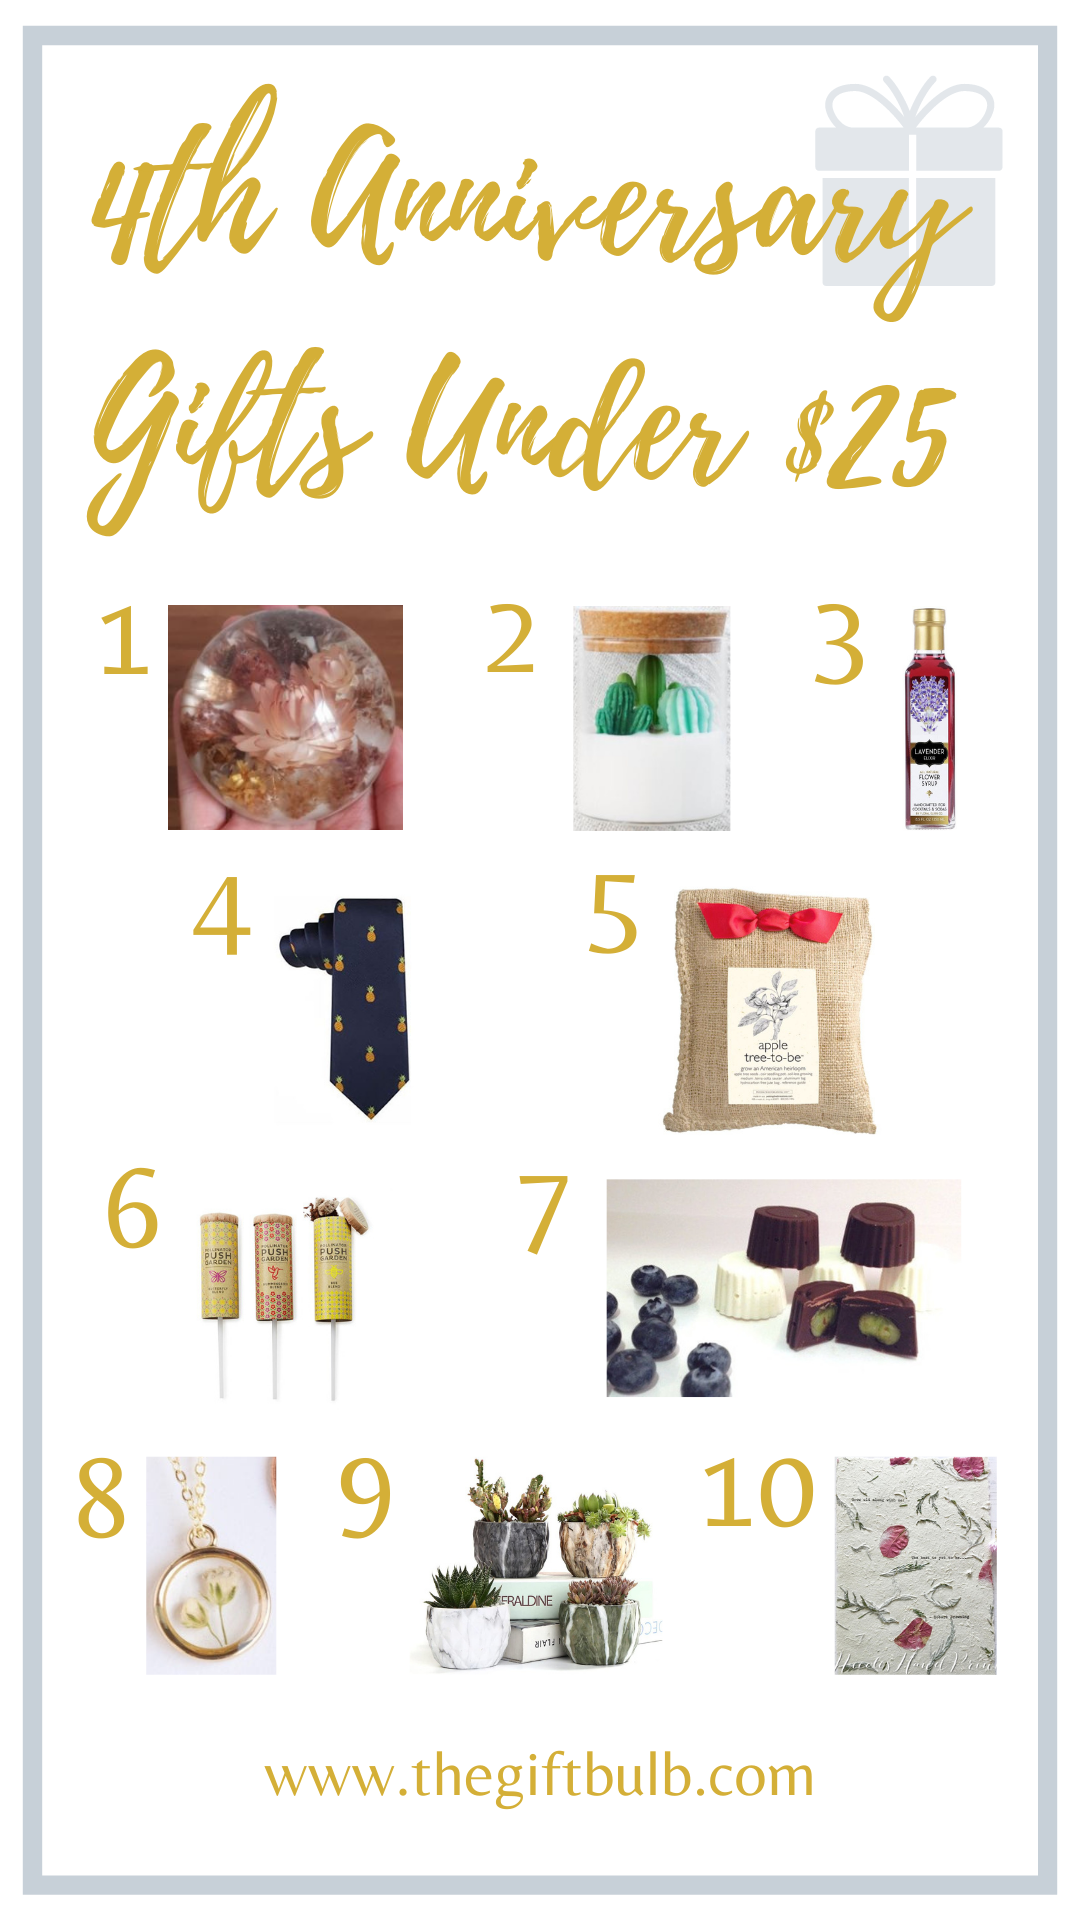 4th Anniversary Gifts Under $25